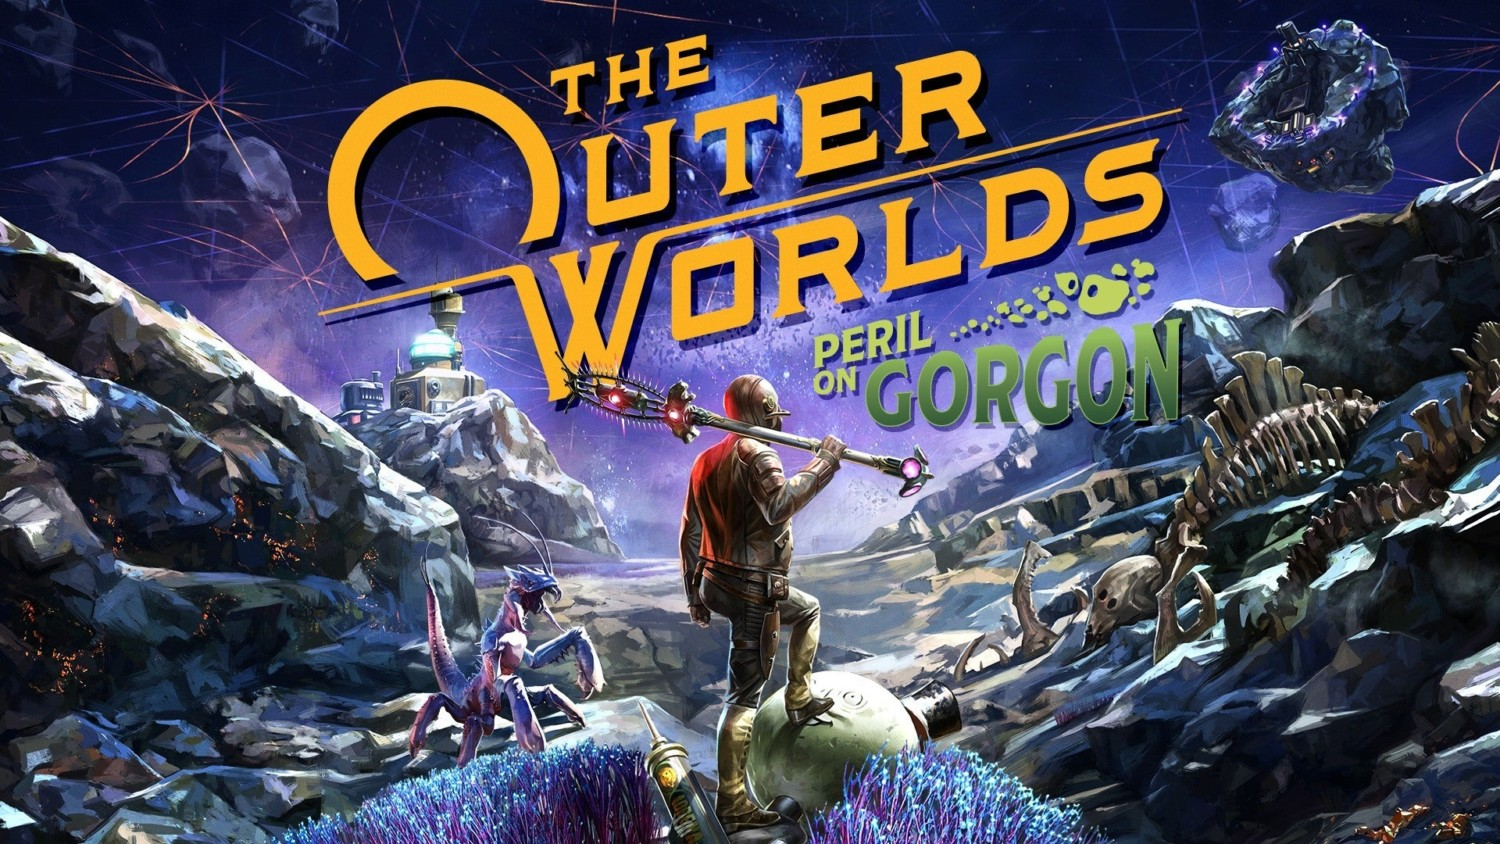 The Outer Worlds: Peril On Gorgon Expansion – 9 September